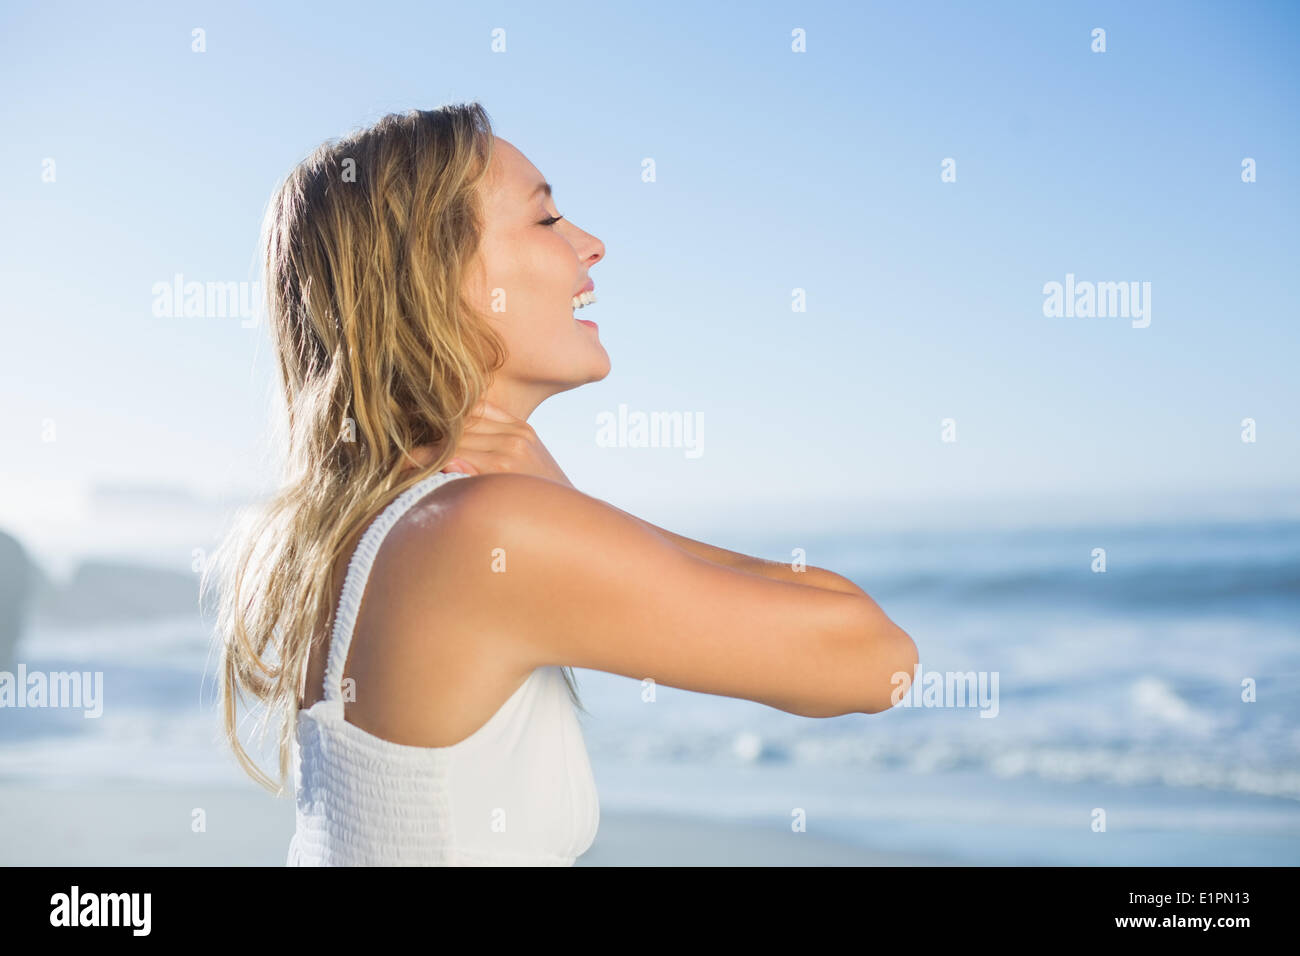 Pretty blonde standing at the beach in white sundress - Stock Image